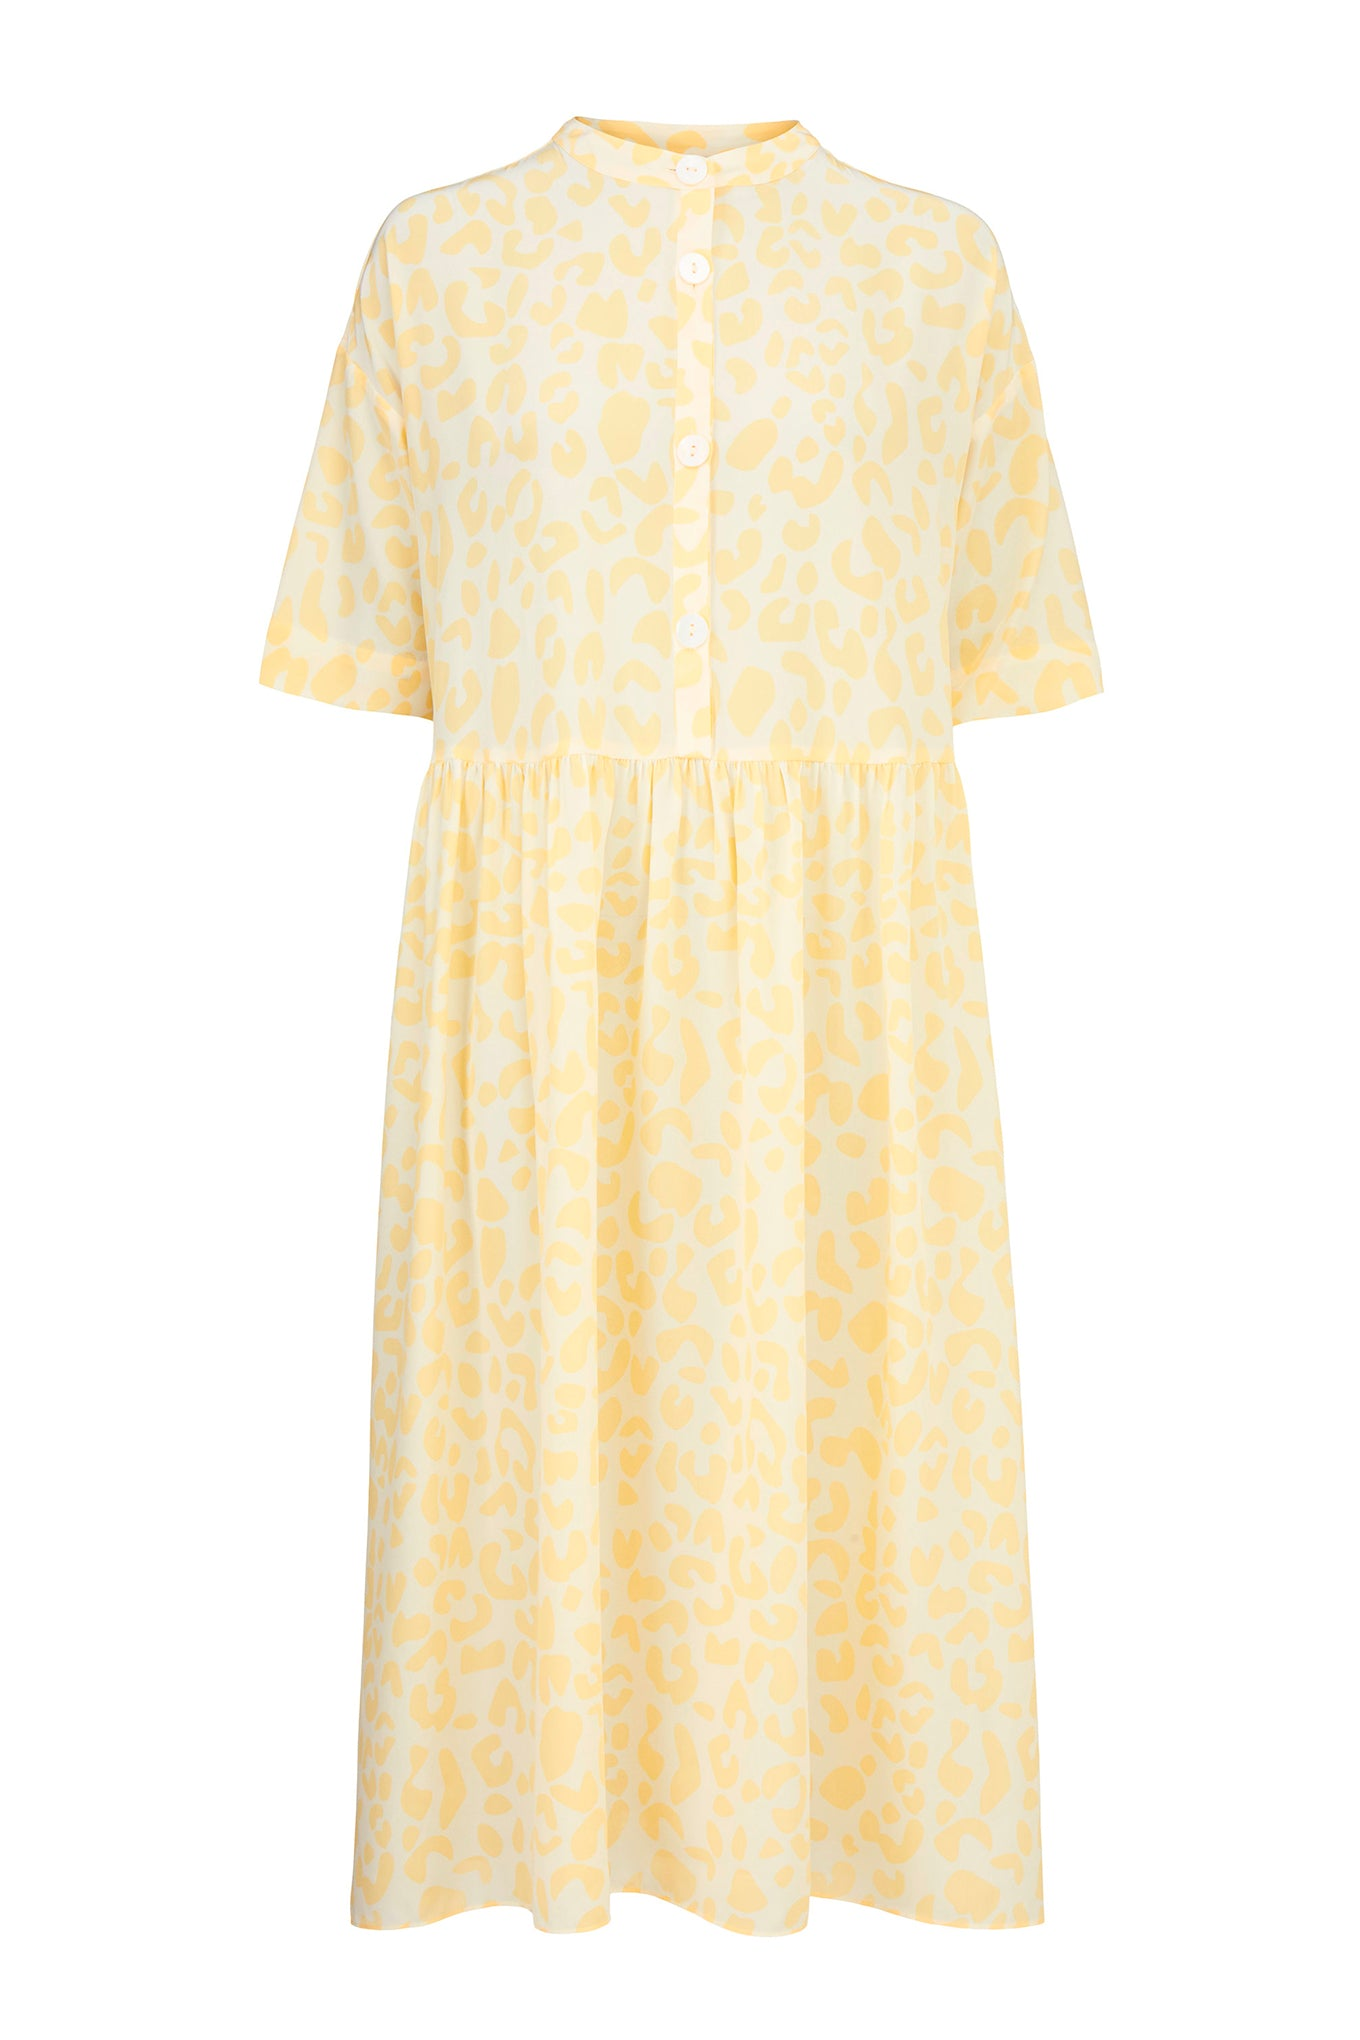 Blake Dress - Yellow Leo